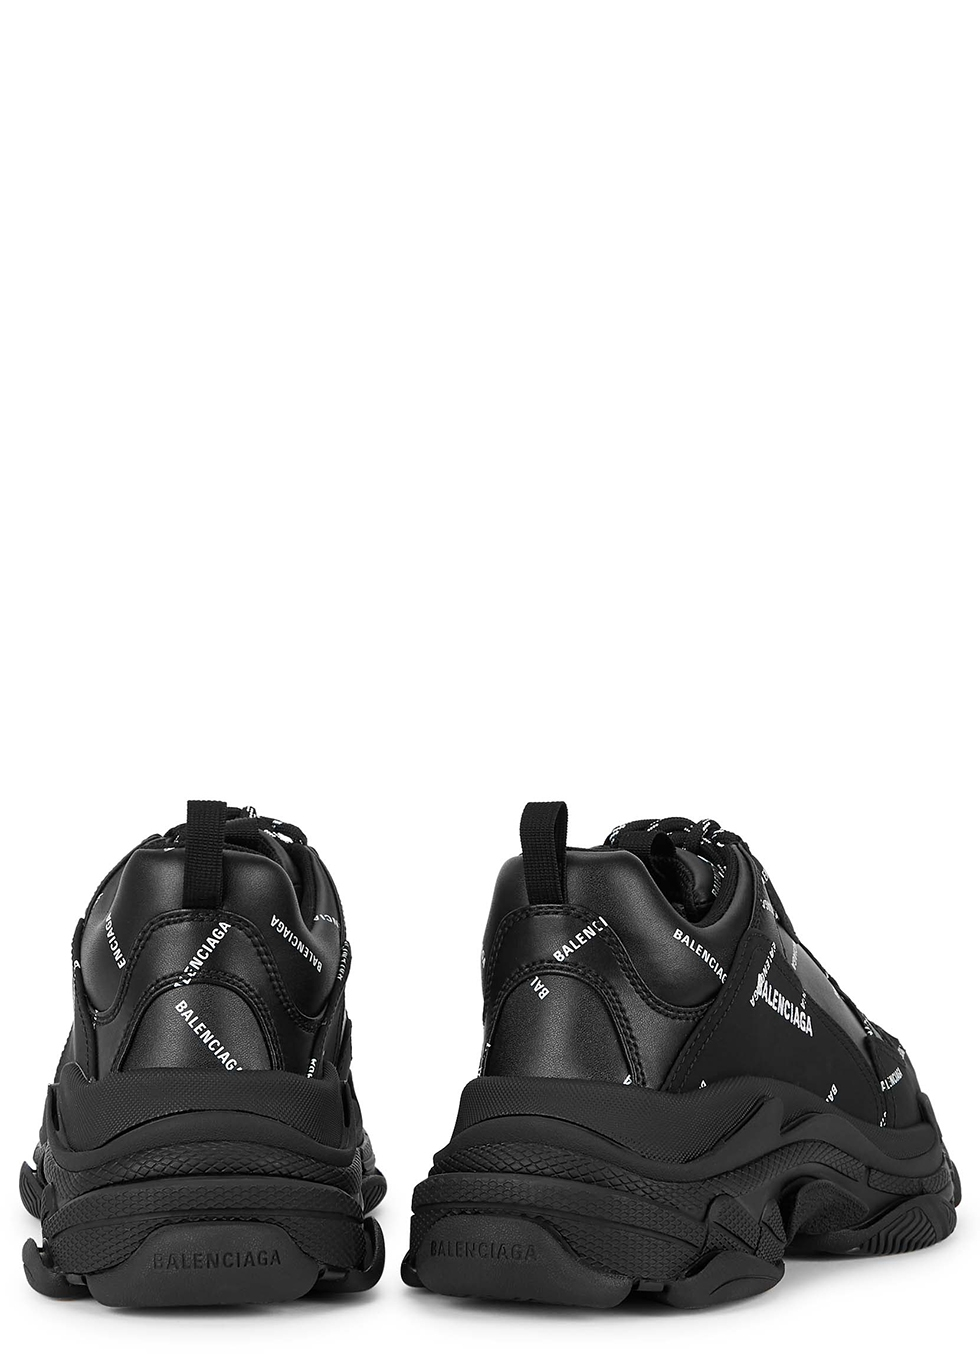 balenciaga womens shoes black